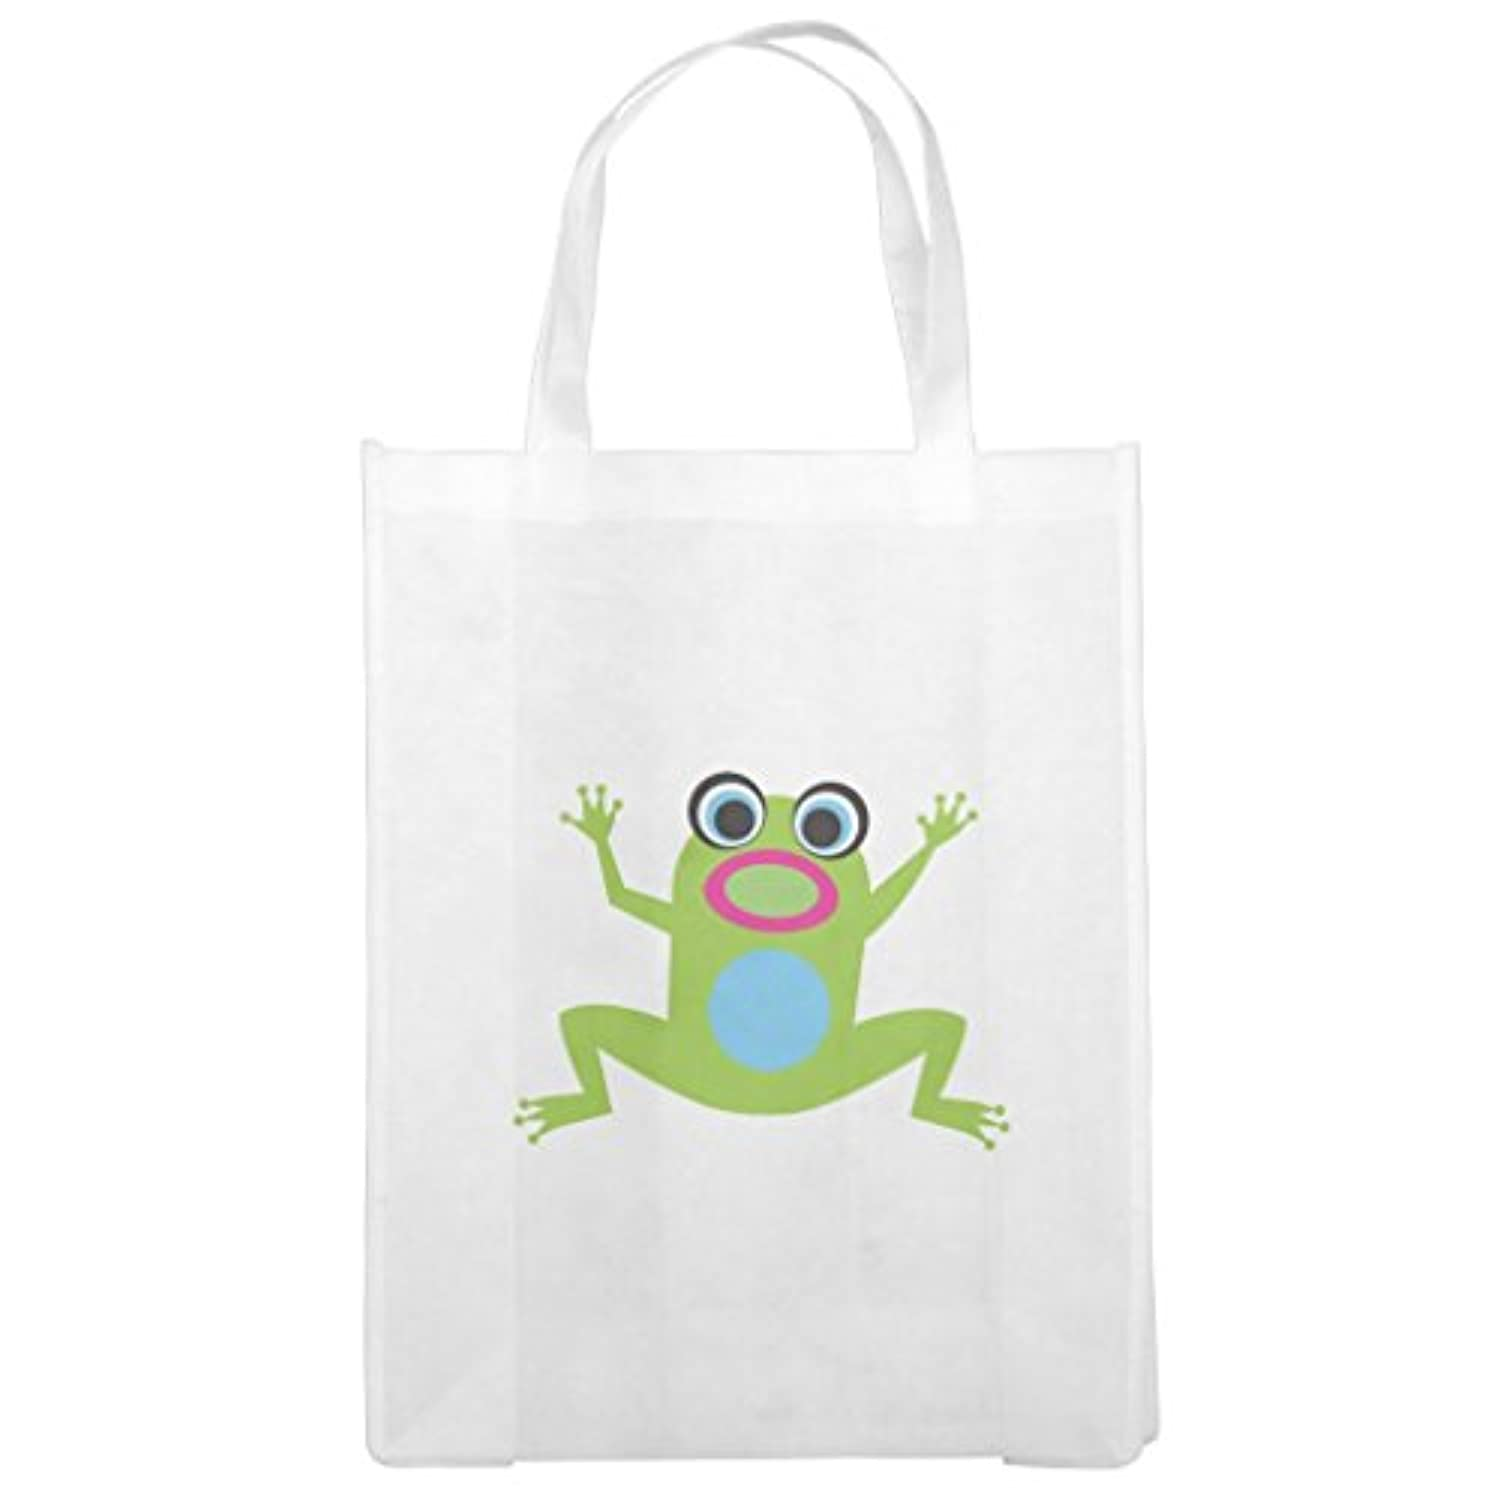 Zazzle Jumping Green FrogかわいいGrocery Bag